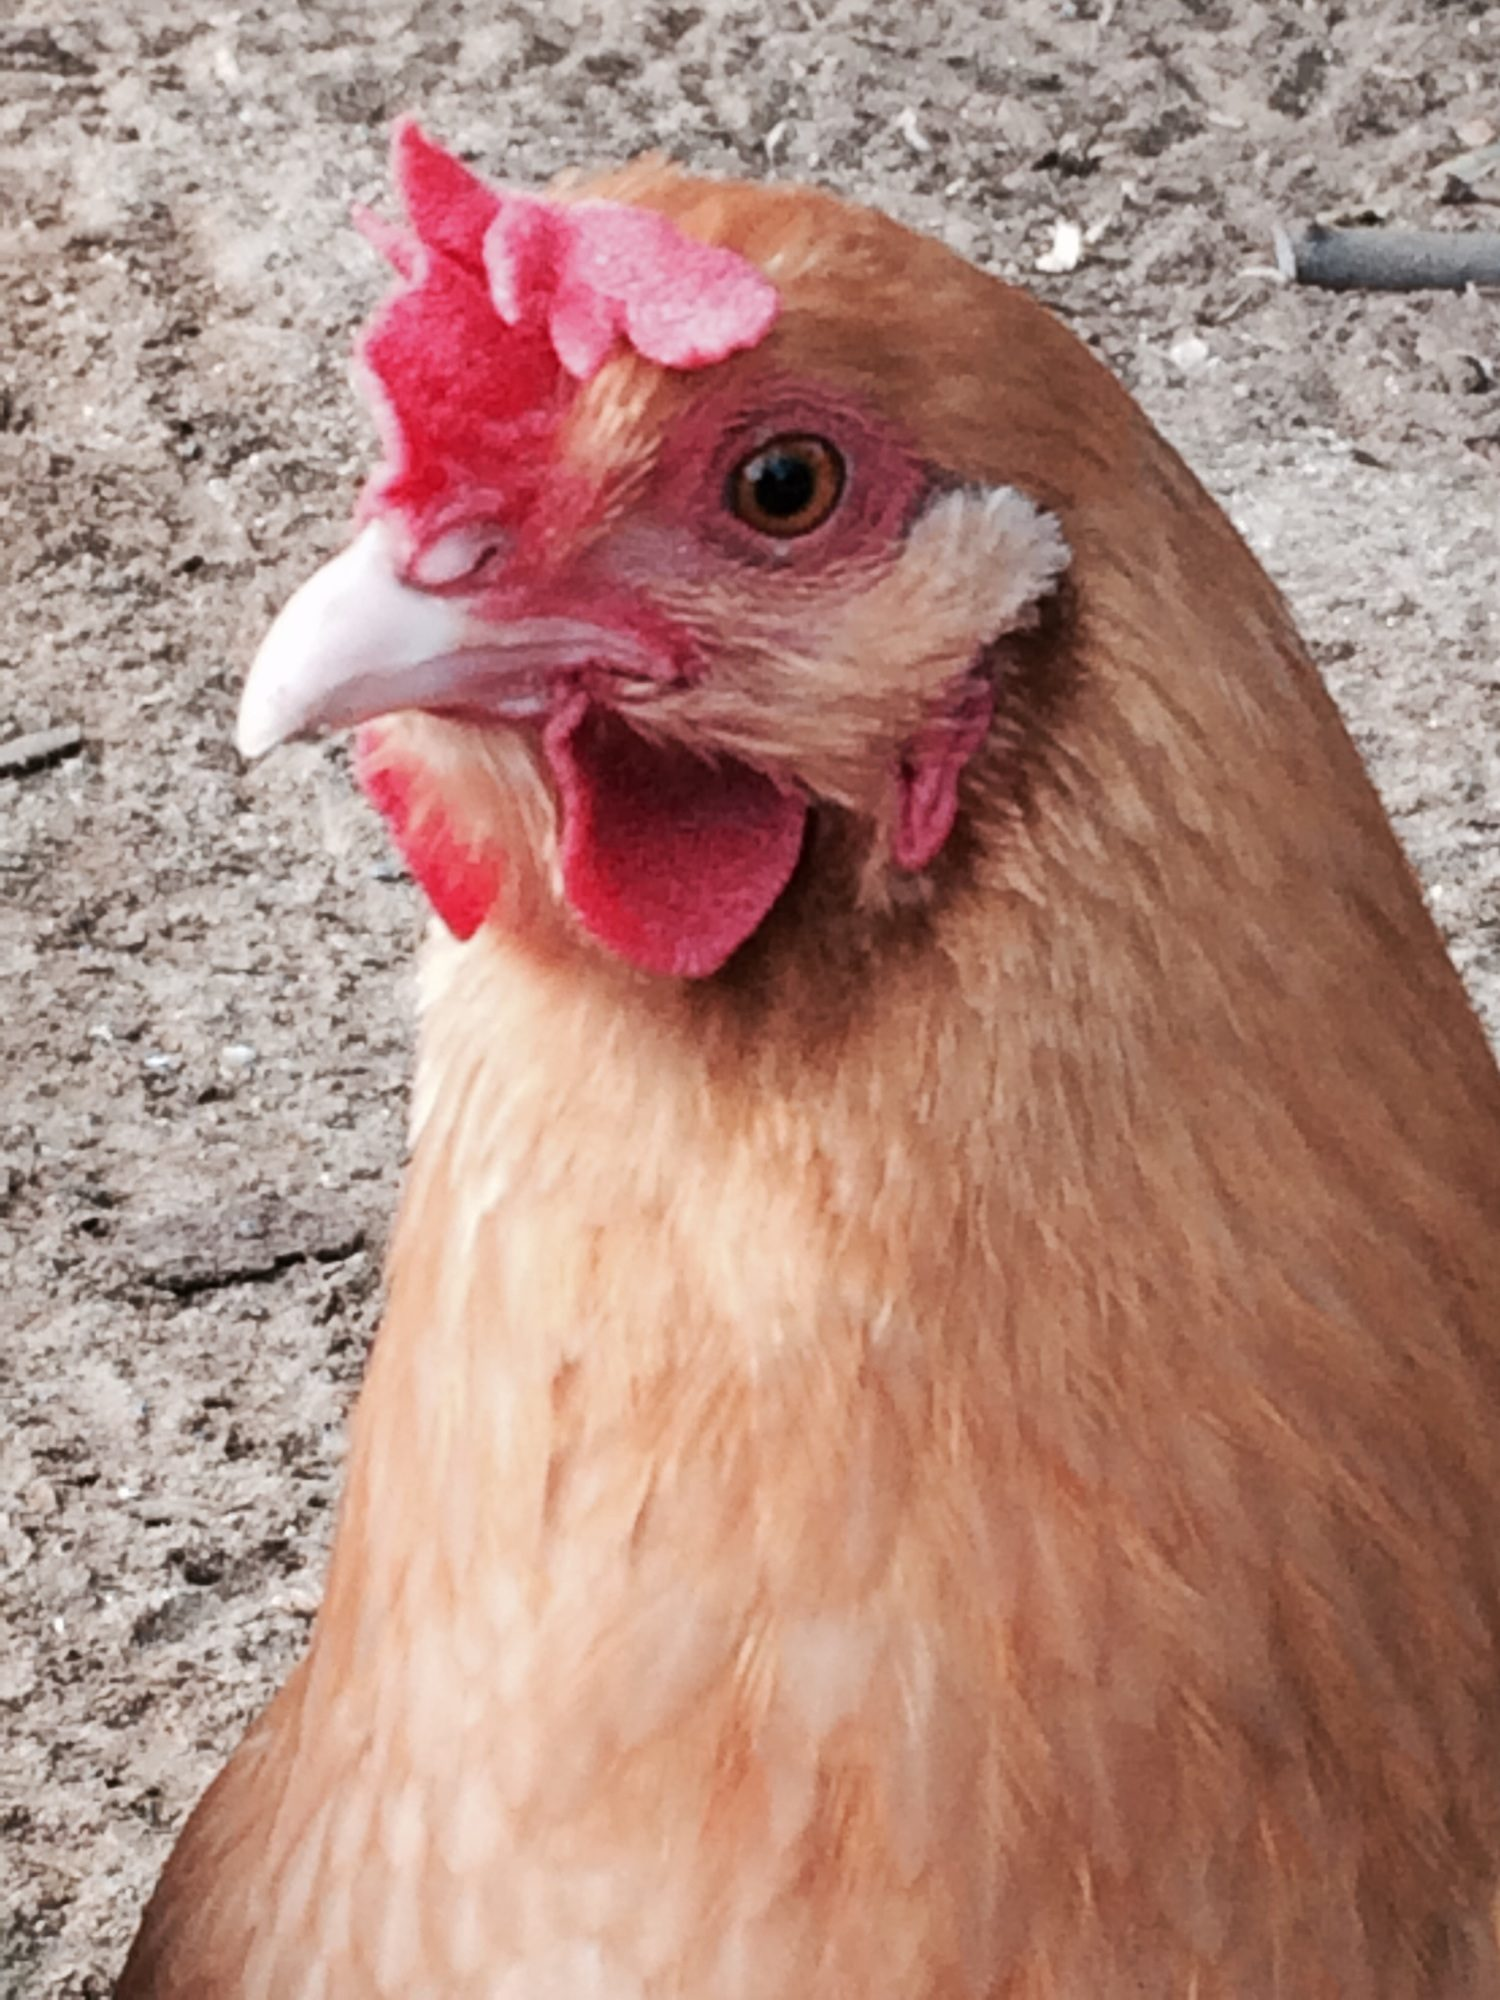 Poor penny got her comb stuck in a fence when she was younger... Now she has a floppy comb!!! Doesn't effect her egg production though!! 😉